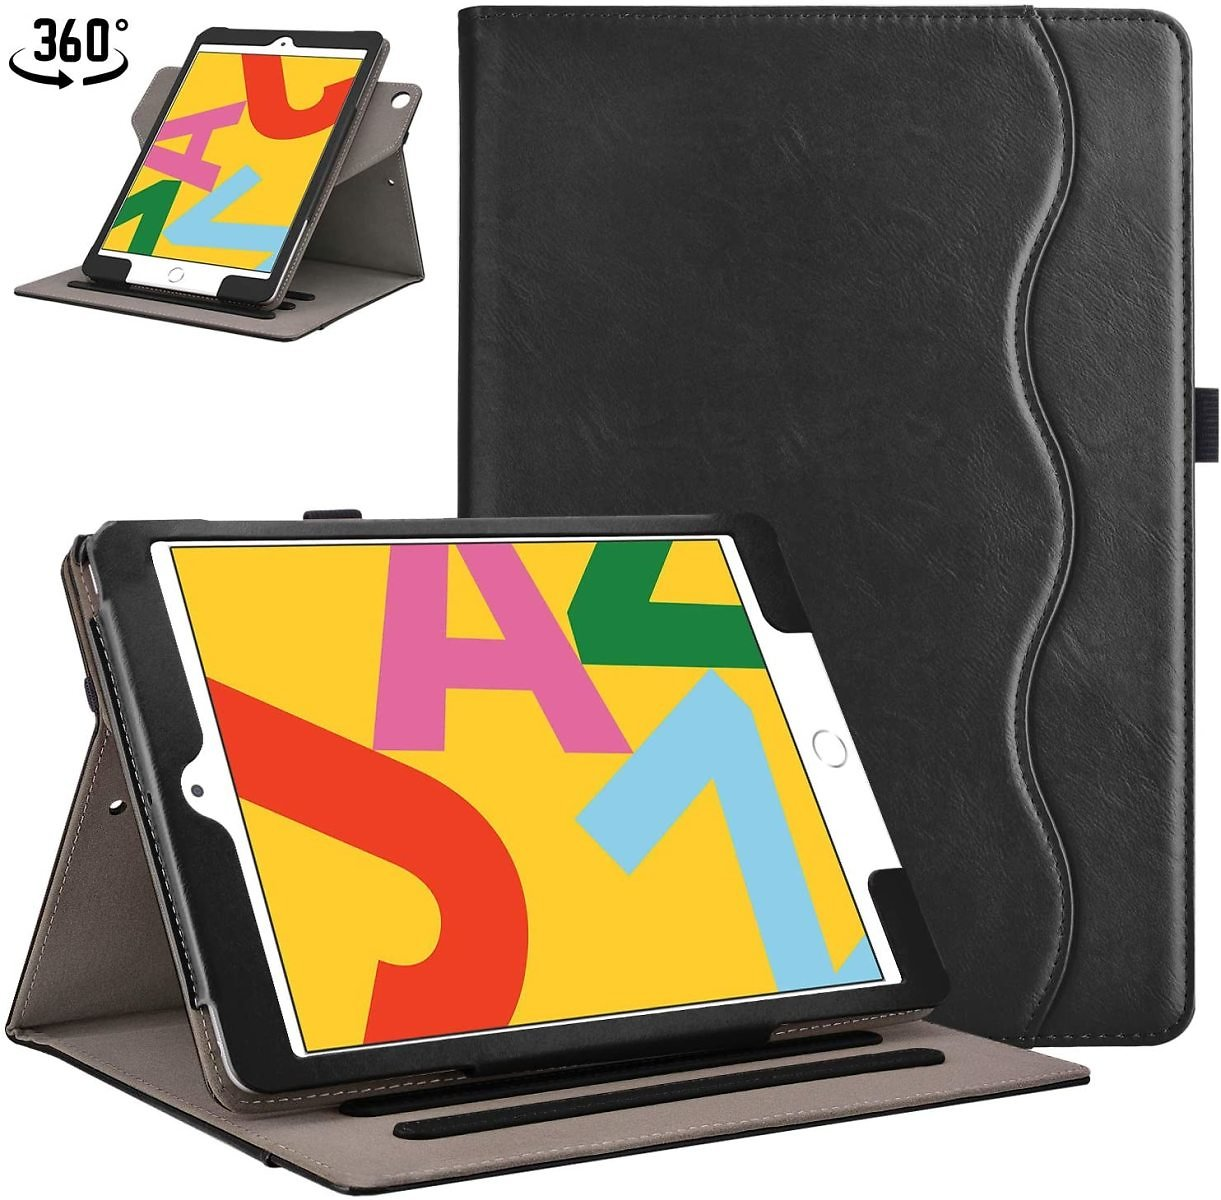 Retear Case for New IPad 7th Generation 10.2 Inch 2019 PU Lightweight Smart Stand Apple Cover with Auto Wake/Sleep